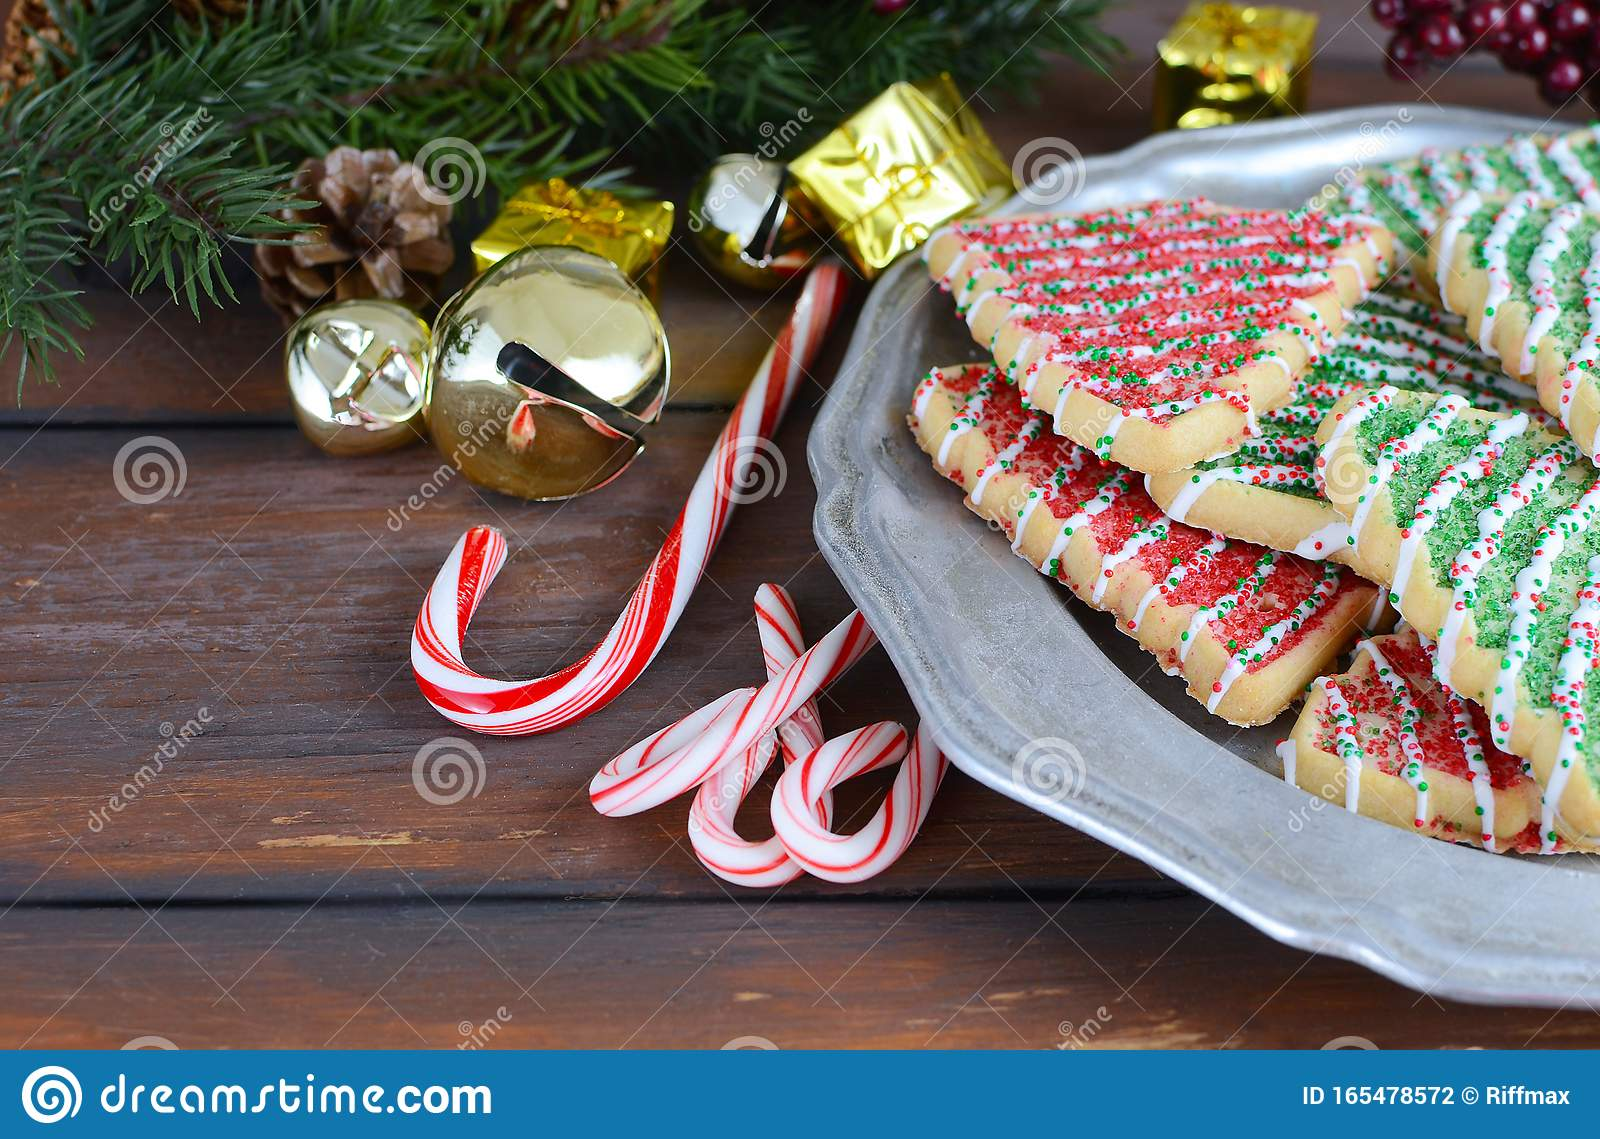 Christmas Tree Shaped Sugar Cookies Candy Canes Pine Branches With Cones Mini Gifts And Jingle Bells Stock Photo Image Of Bells Cane 165478572